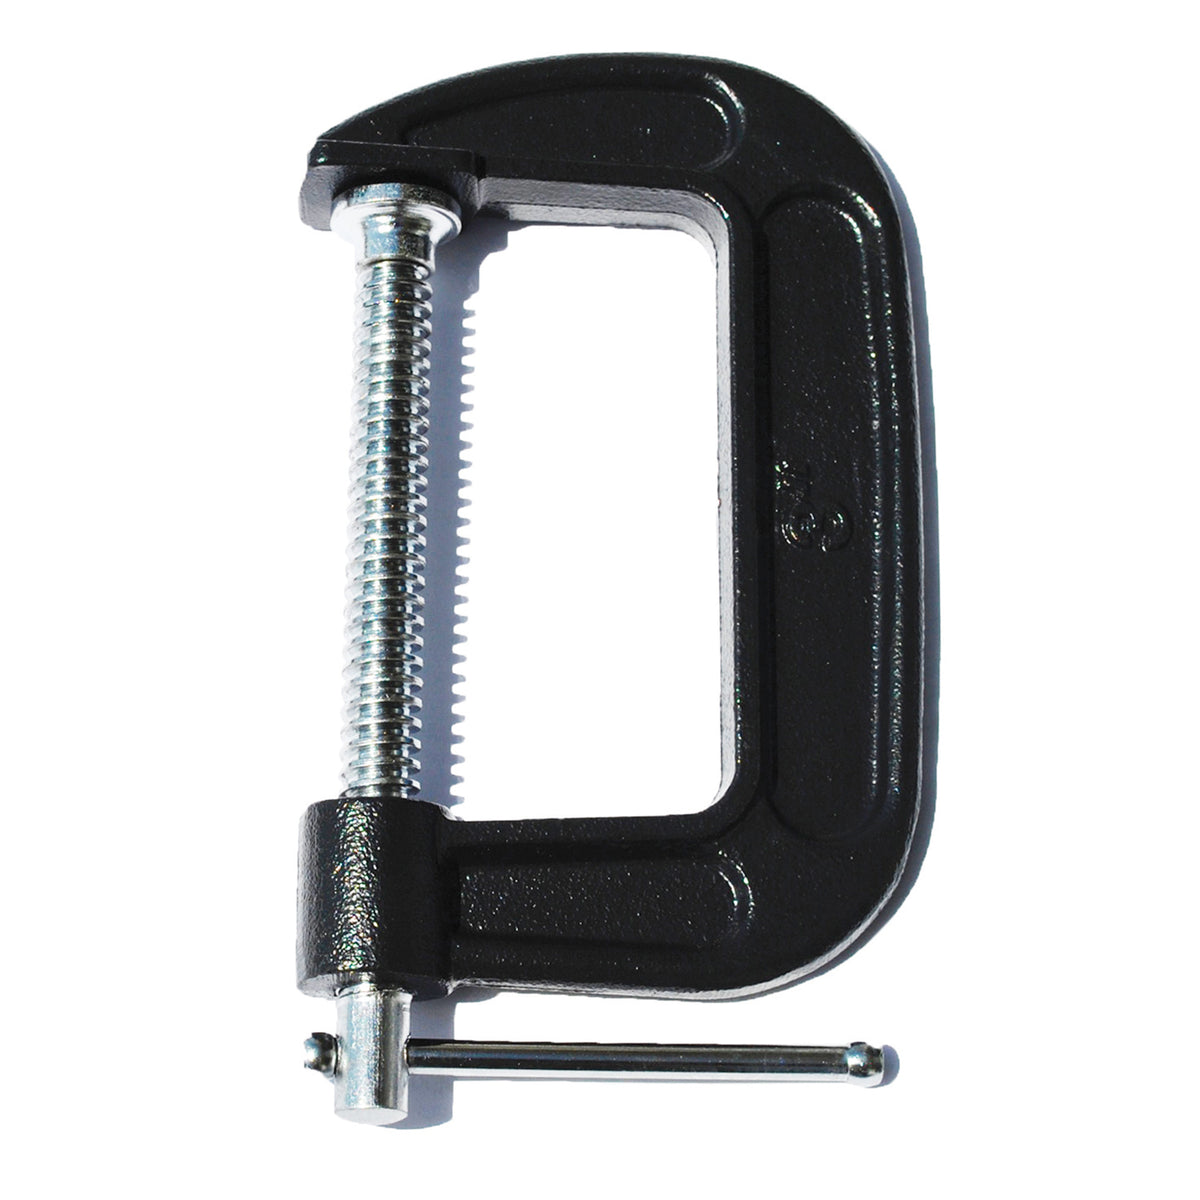 C Clamps - Heavy Duty | Sizes 2